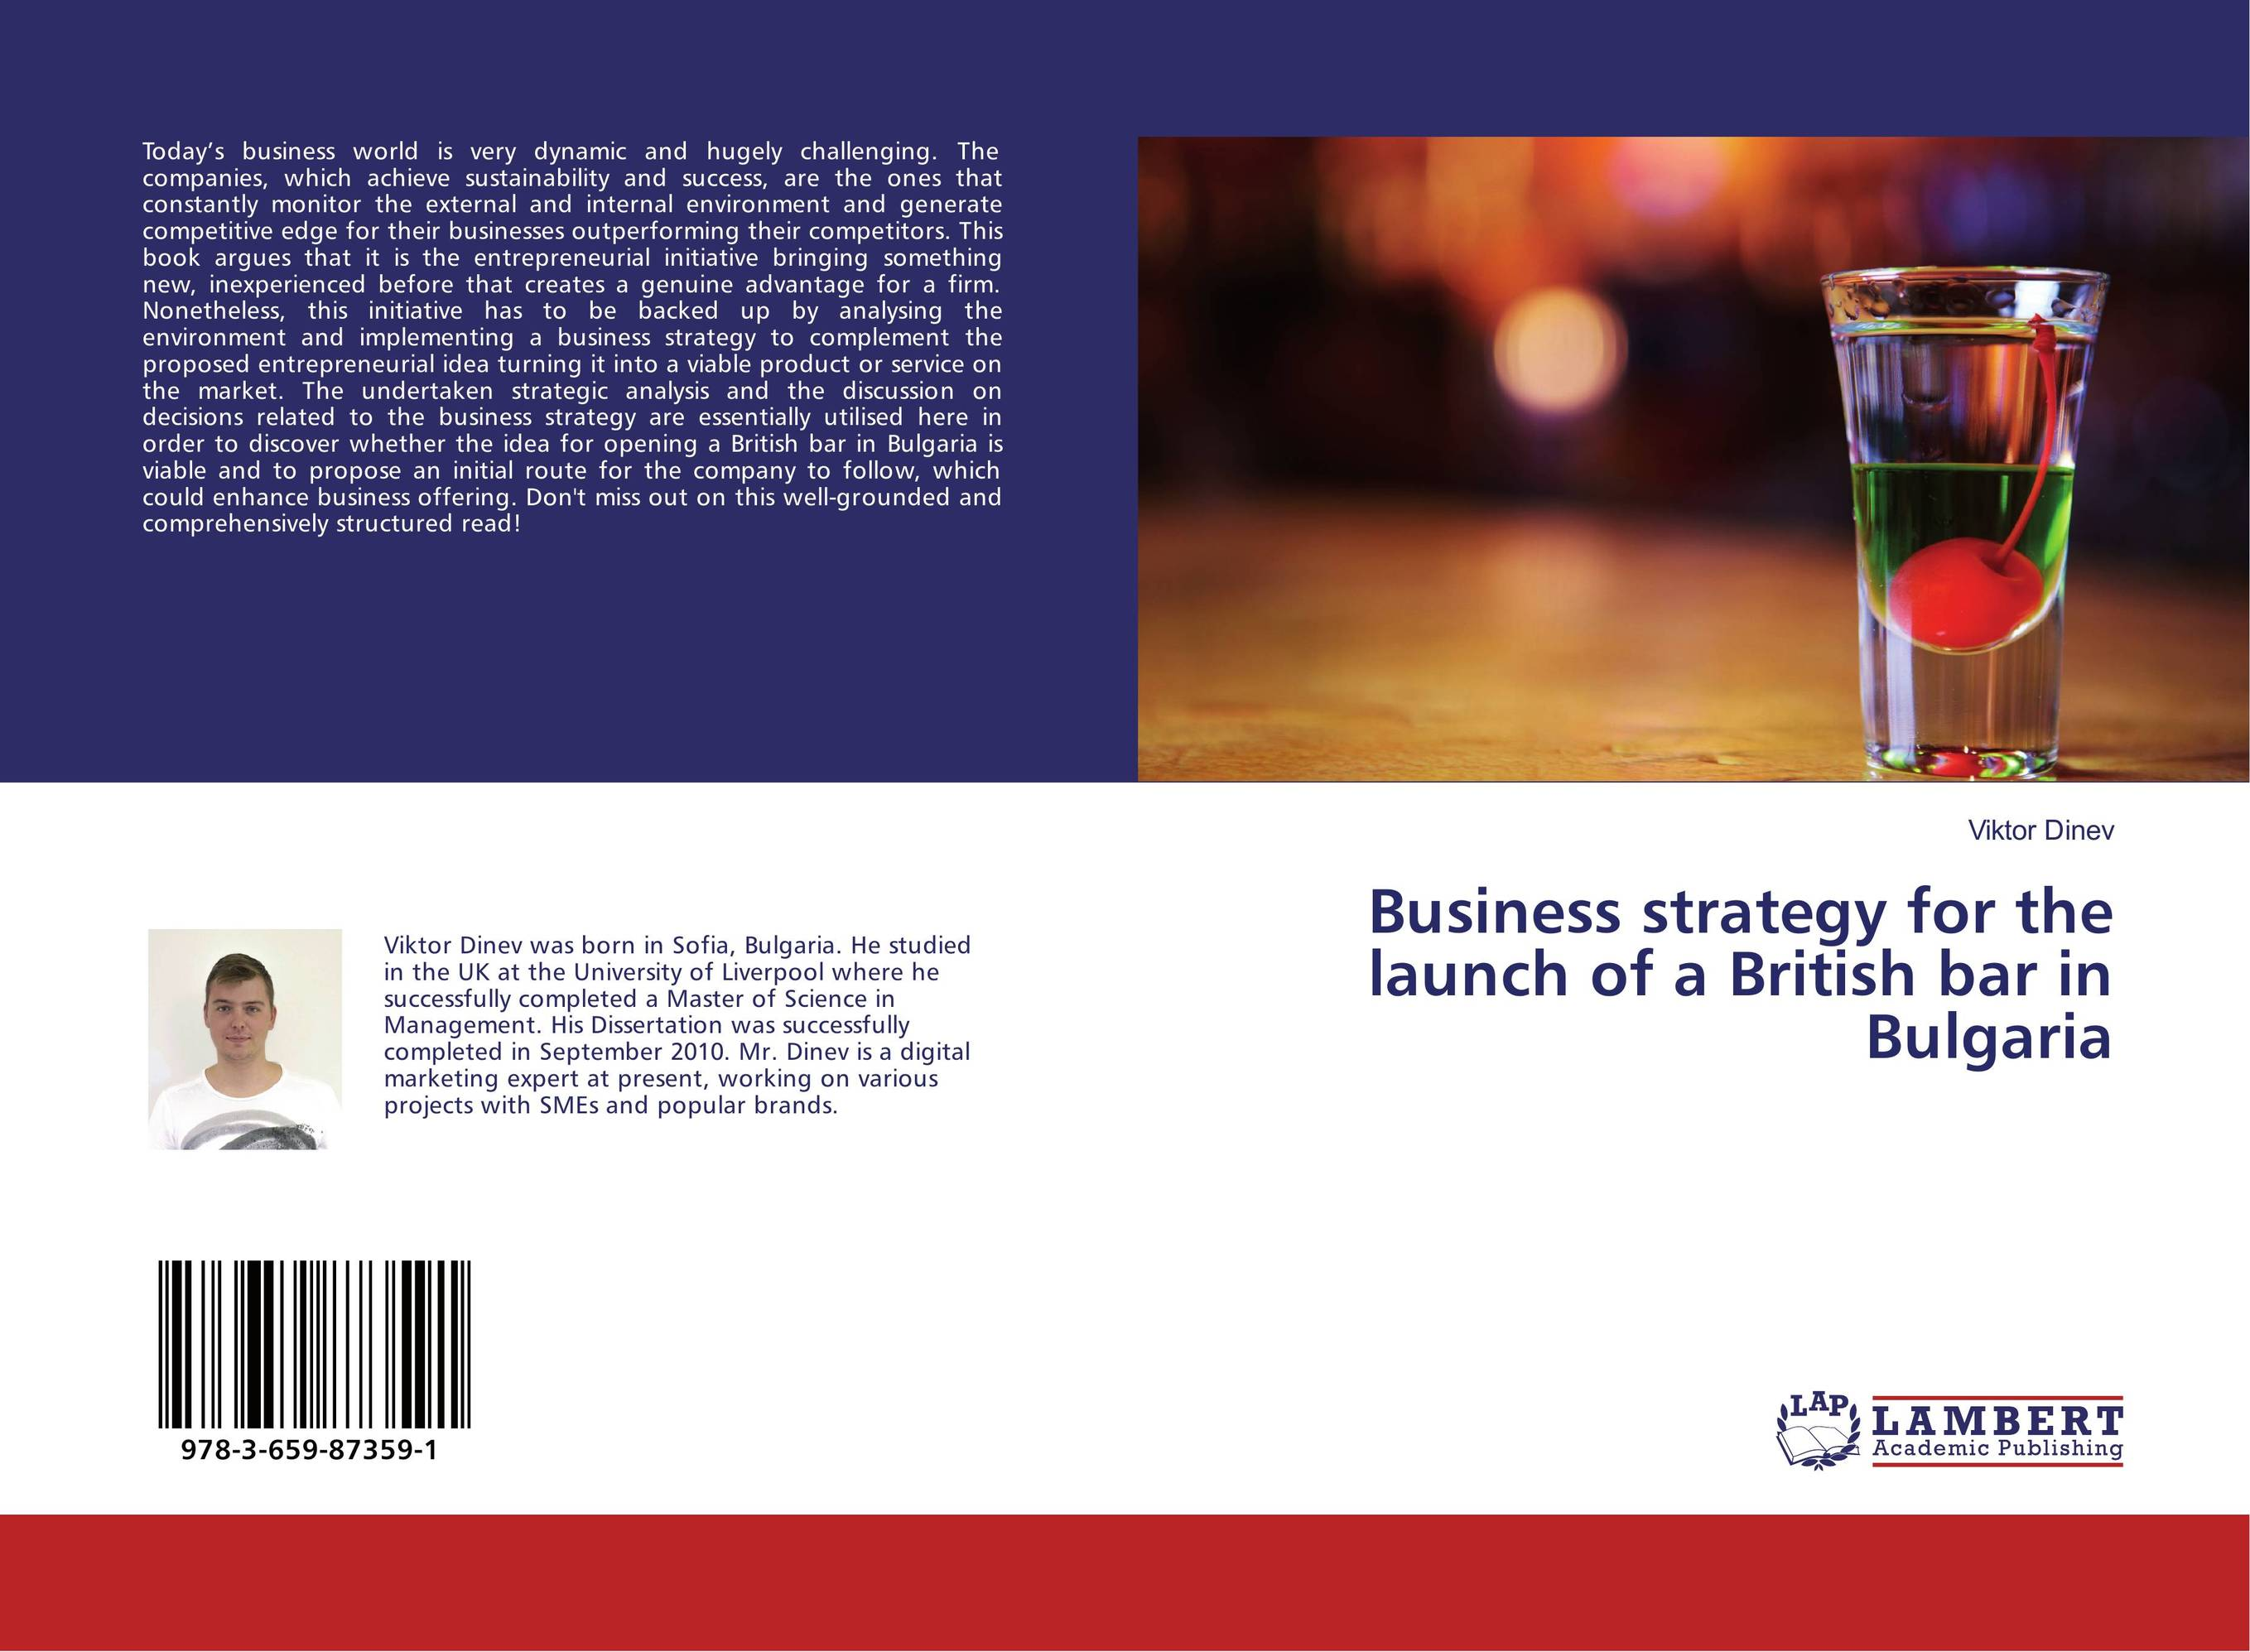 Business strategy for the launch of a British bar in Bulgaria